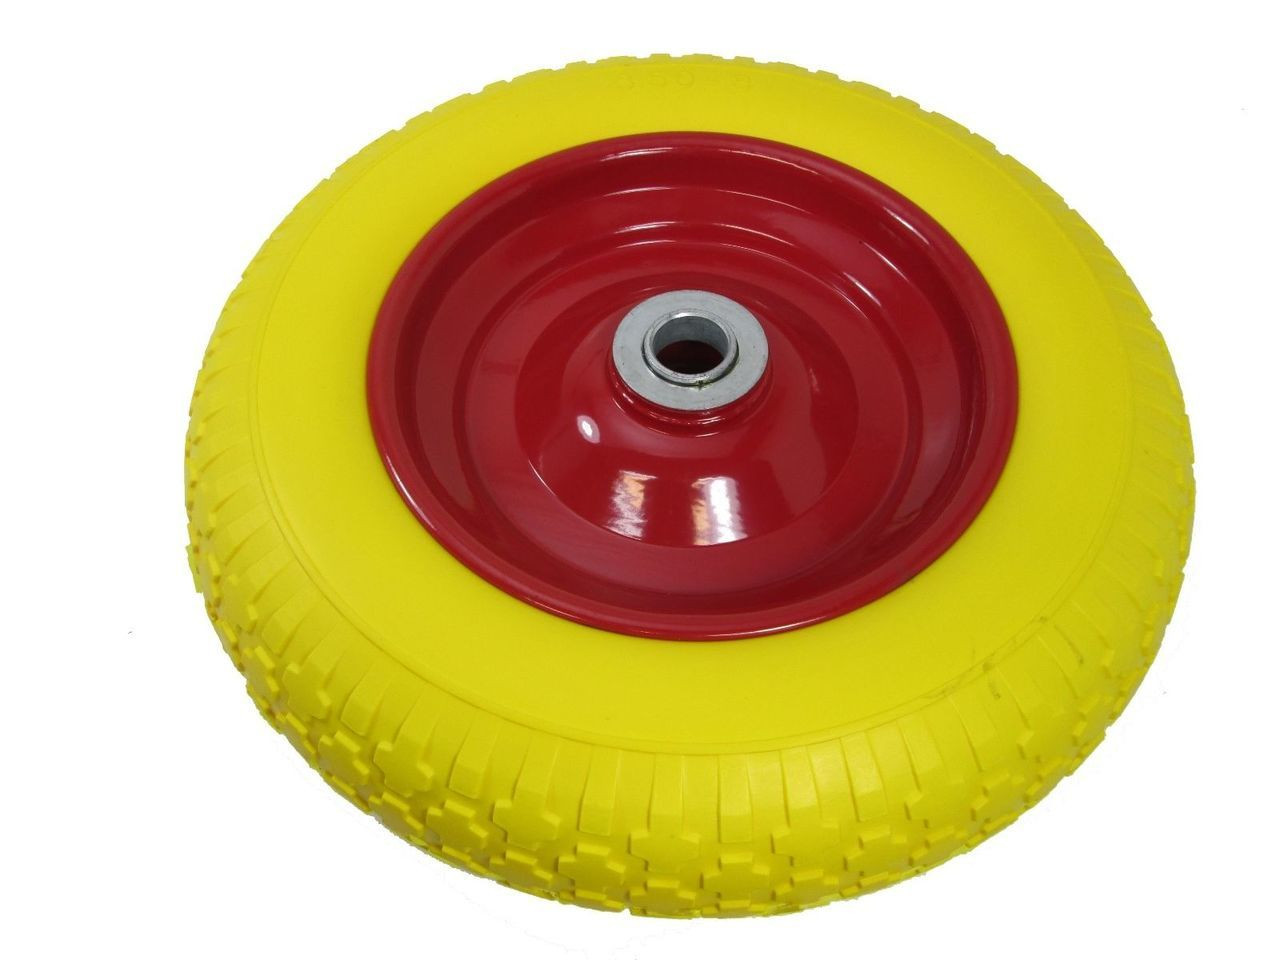 2x10 Puncture Burst Proof Solid Rubber Sack Truck Trolley Wheels Tyres RM027